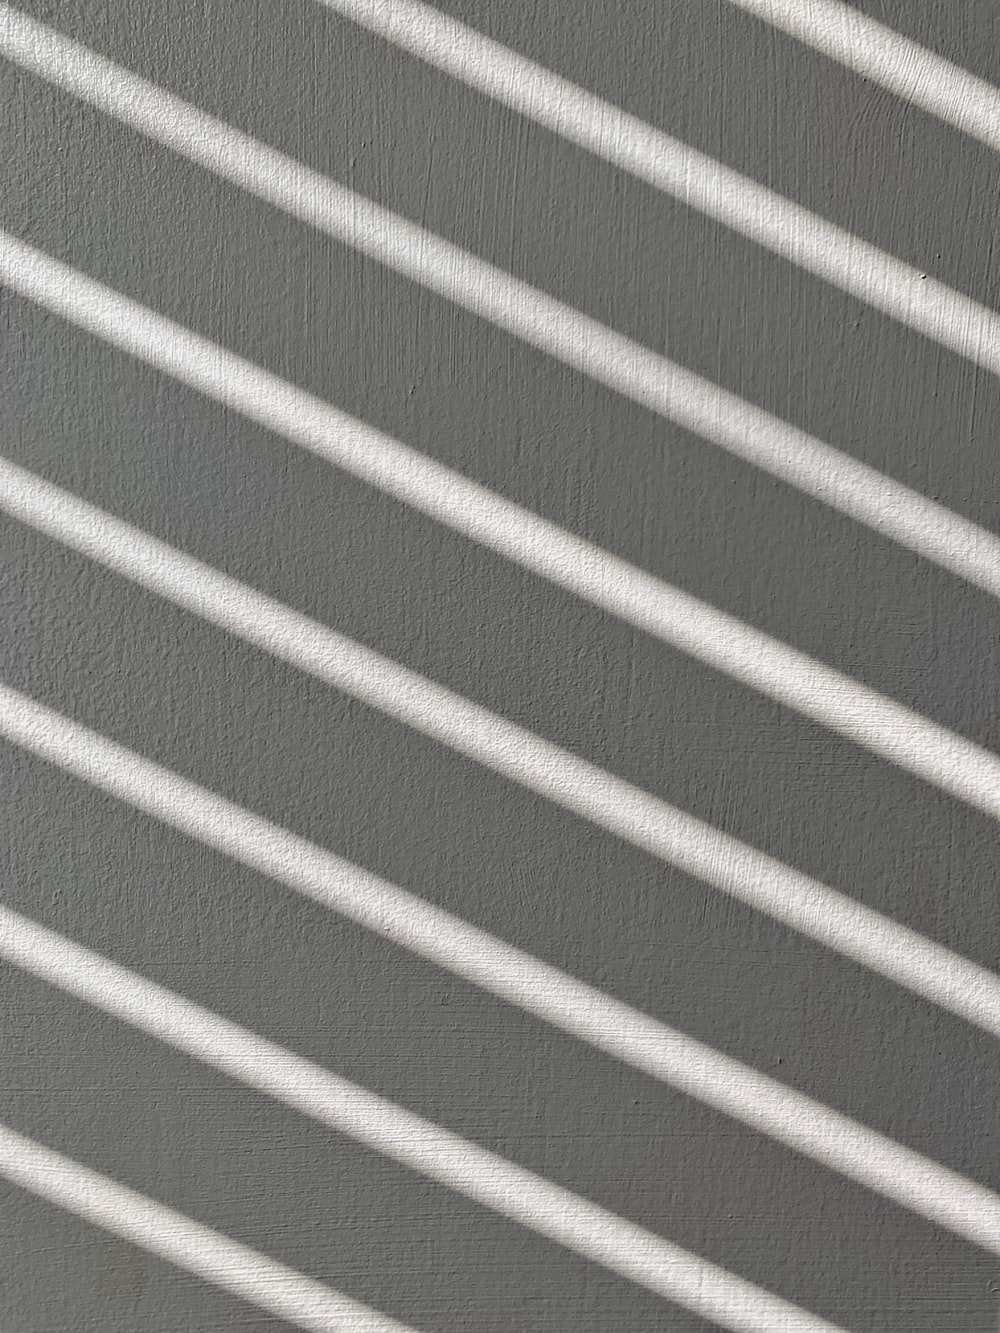 white and grey striped textile